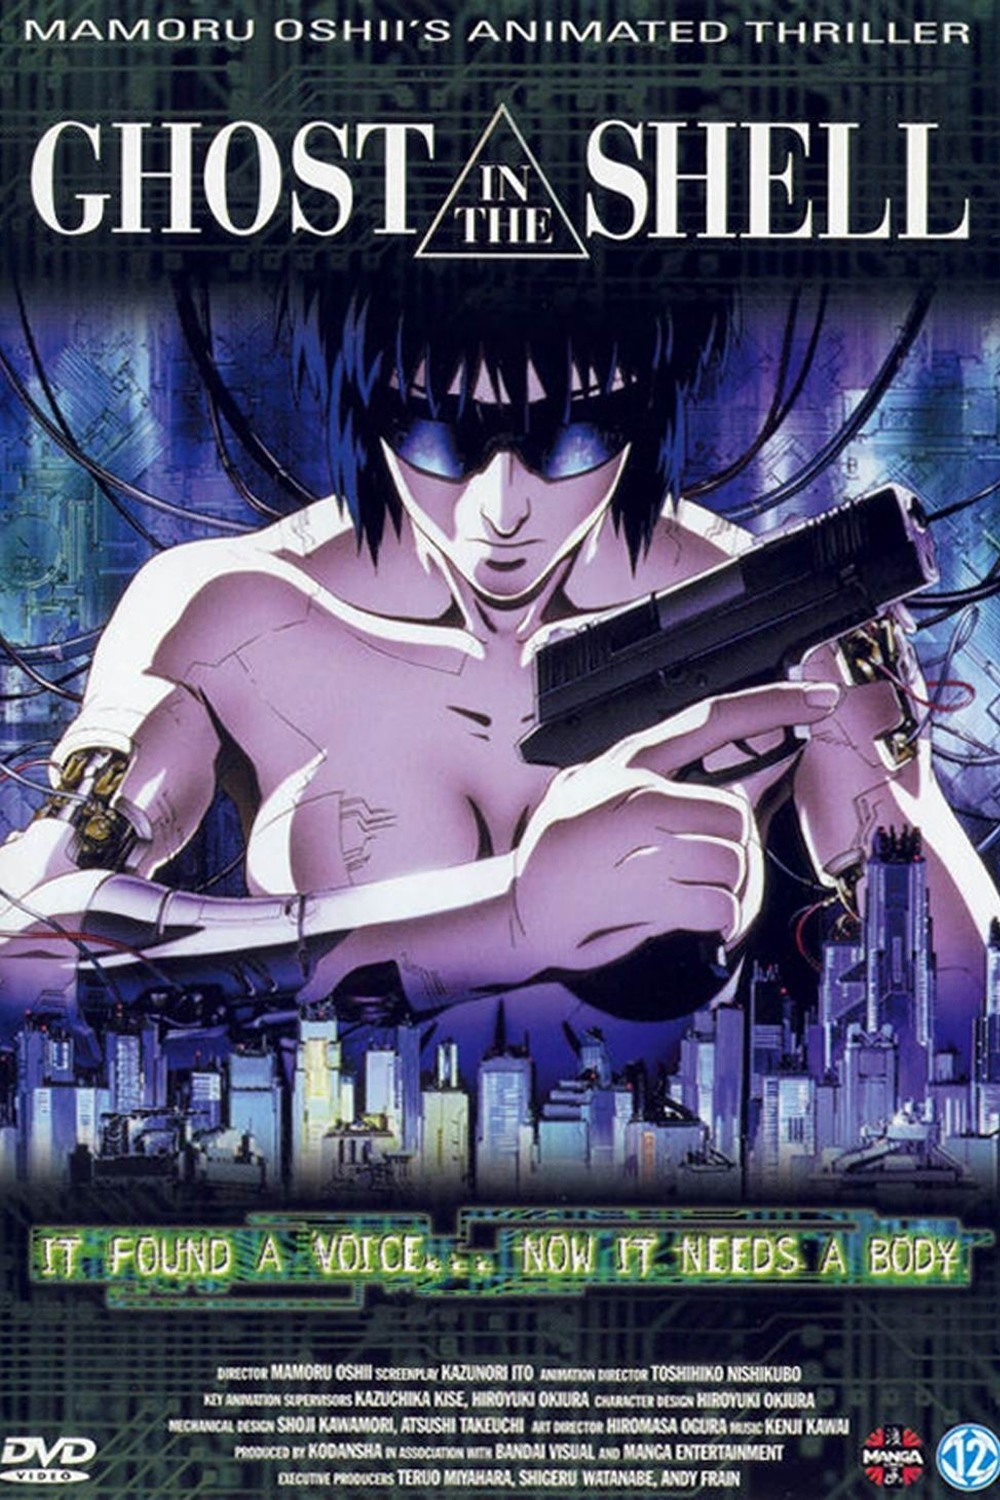 GHOST IN THE SHELL de Mamoru Oshii